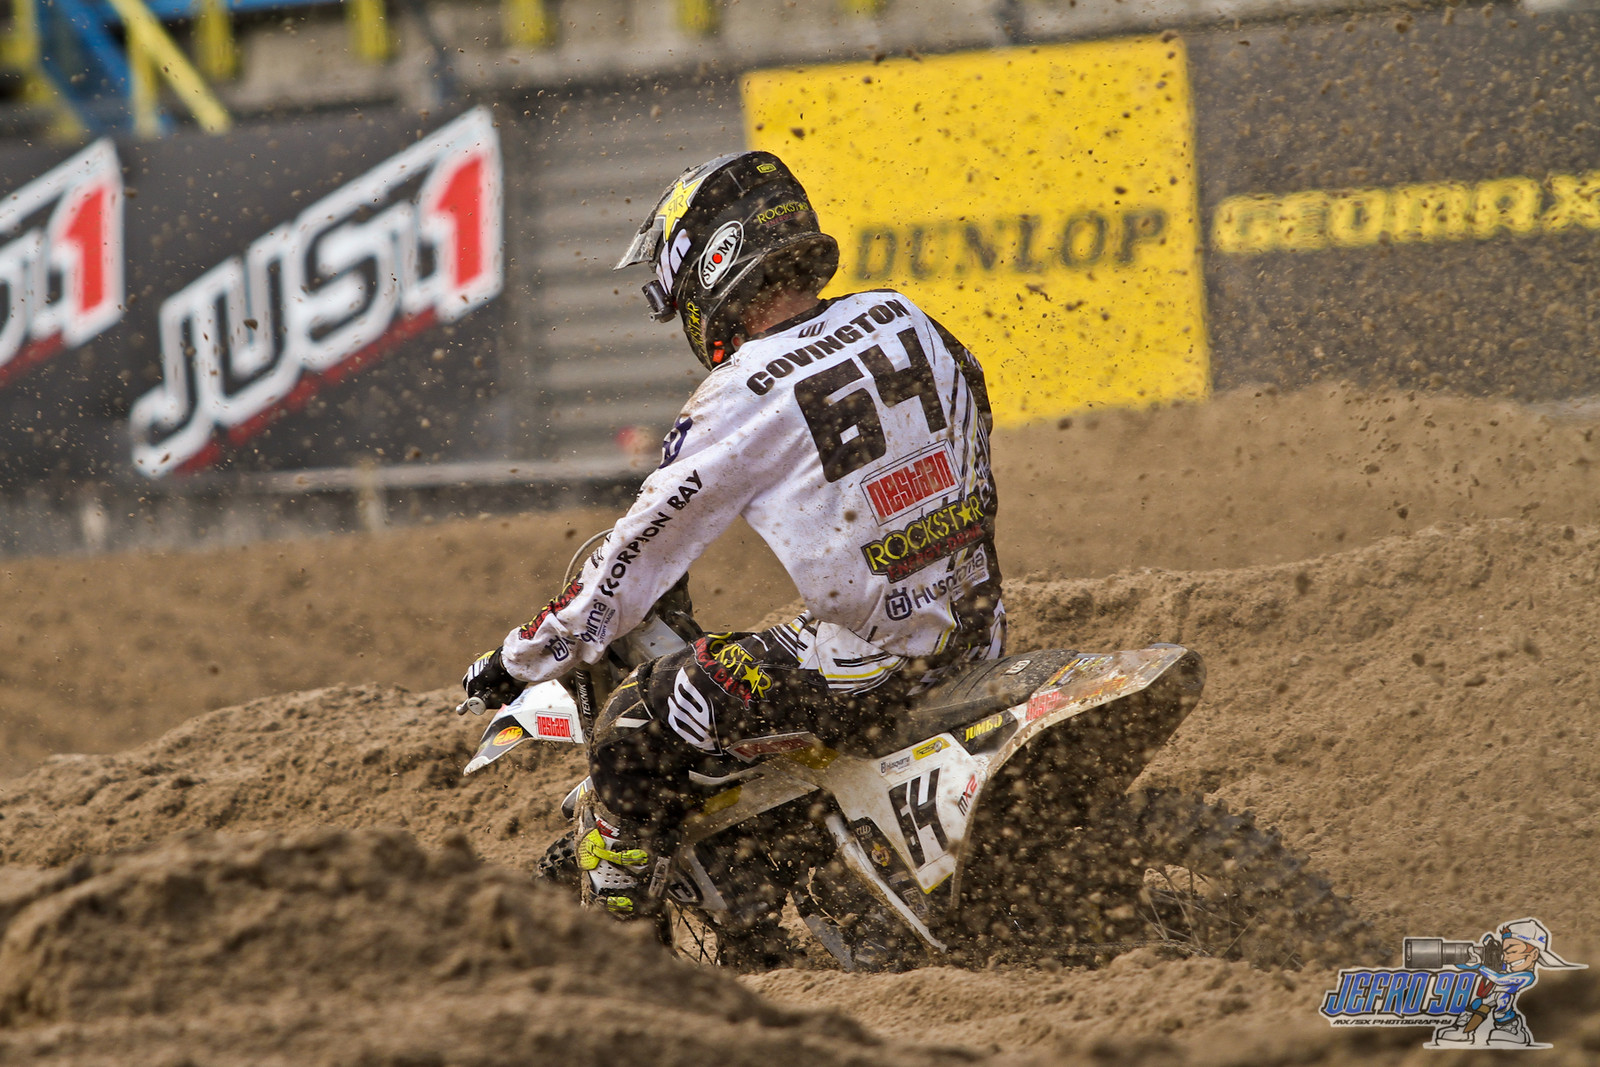 Thomas Covington - Photo Gallery: MXGP of the Netherlands - Motocross Pictures - Vital MX